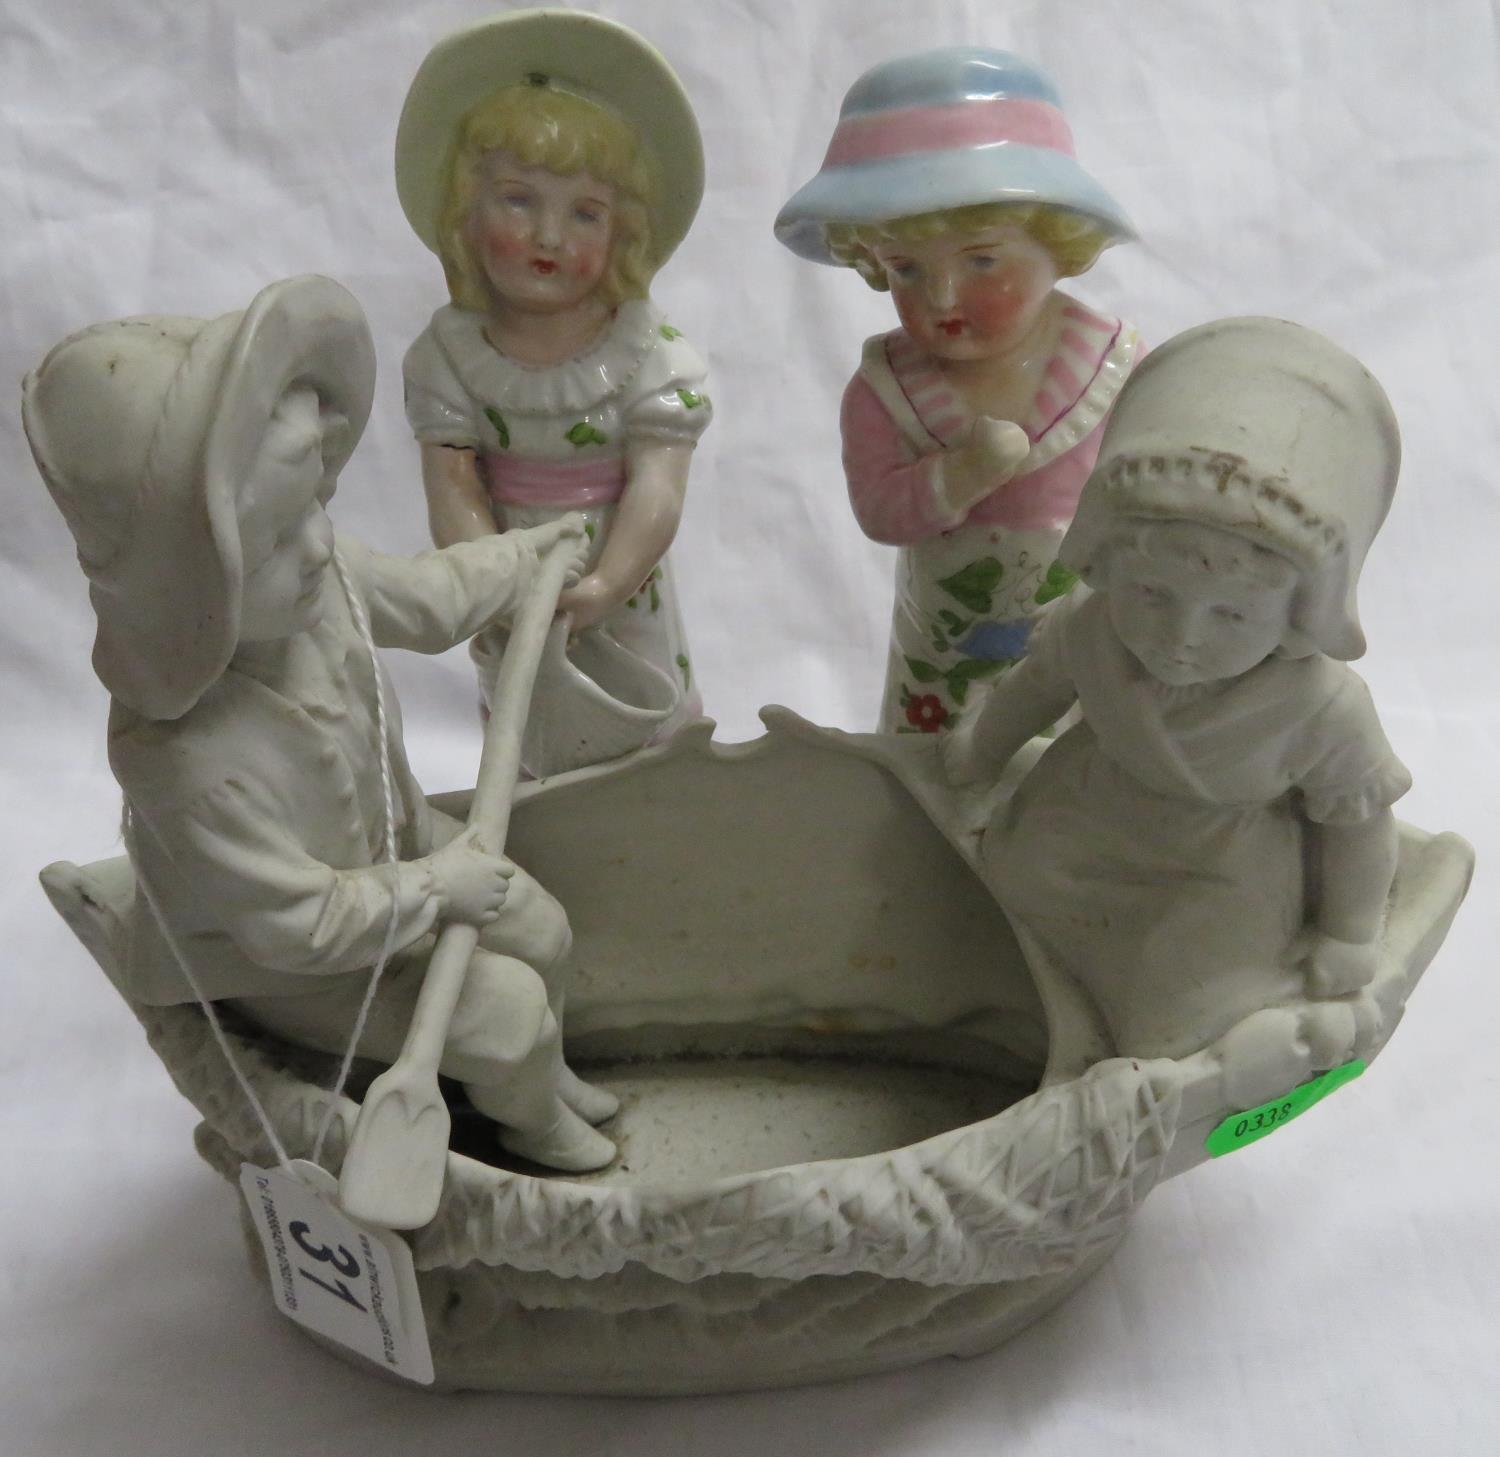 Lot 31 - Parian ware figures in a boat and two other figures - possibly German